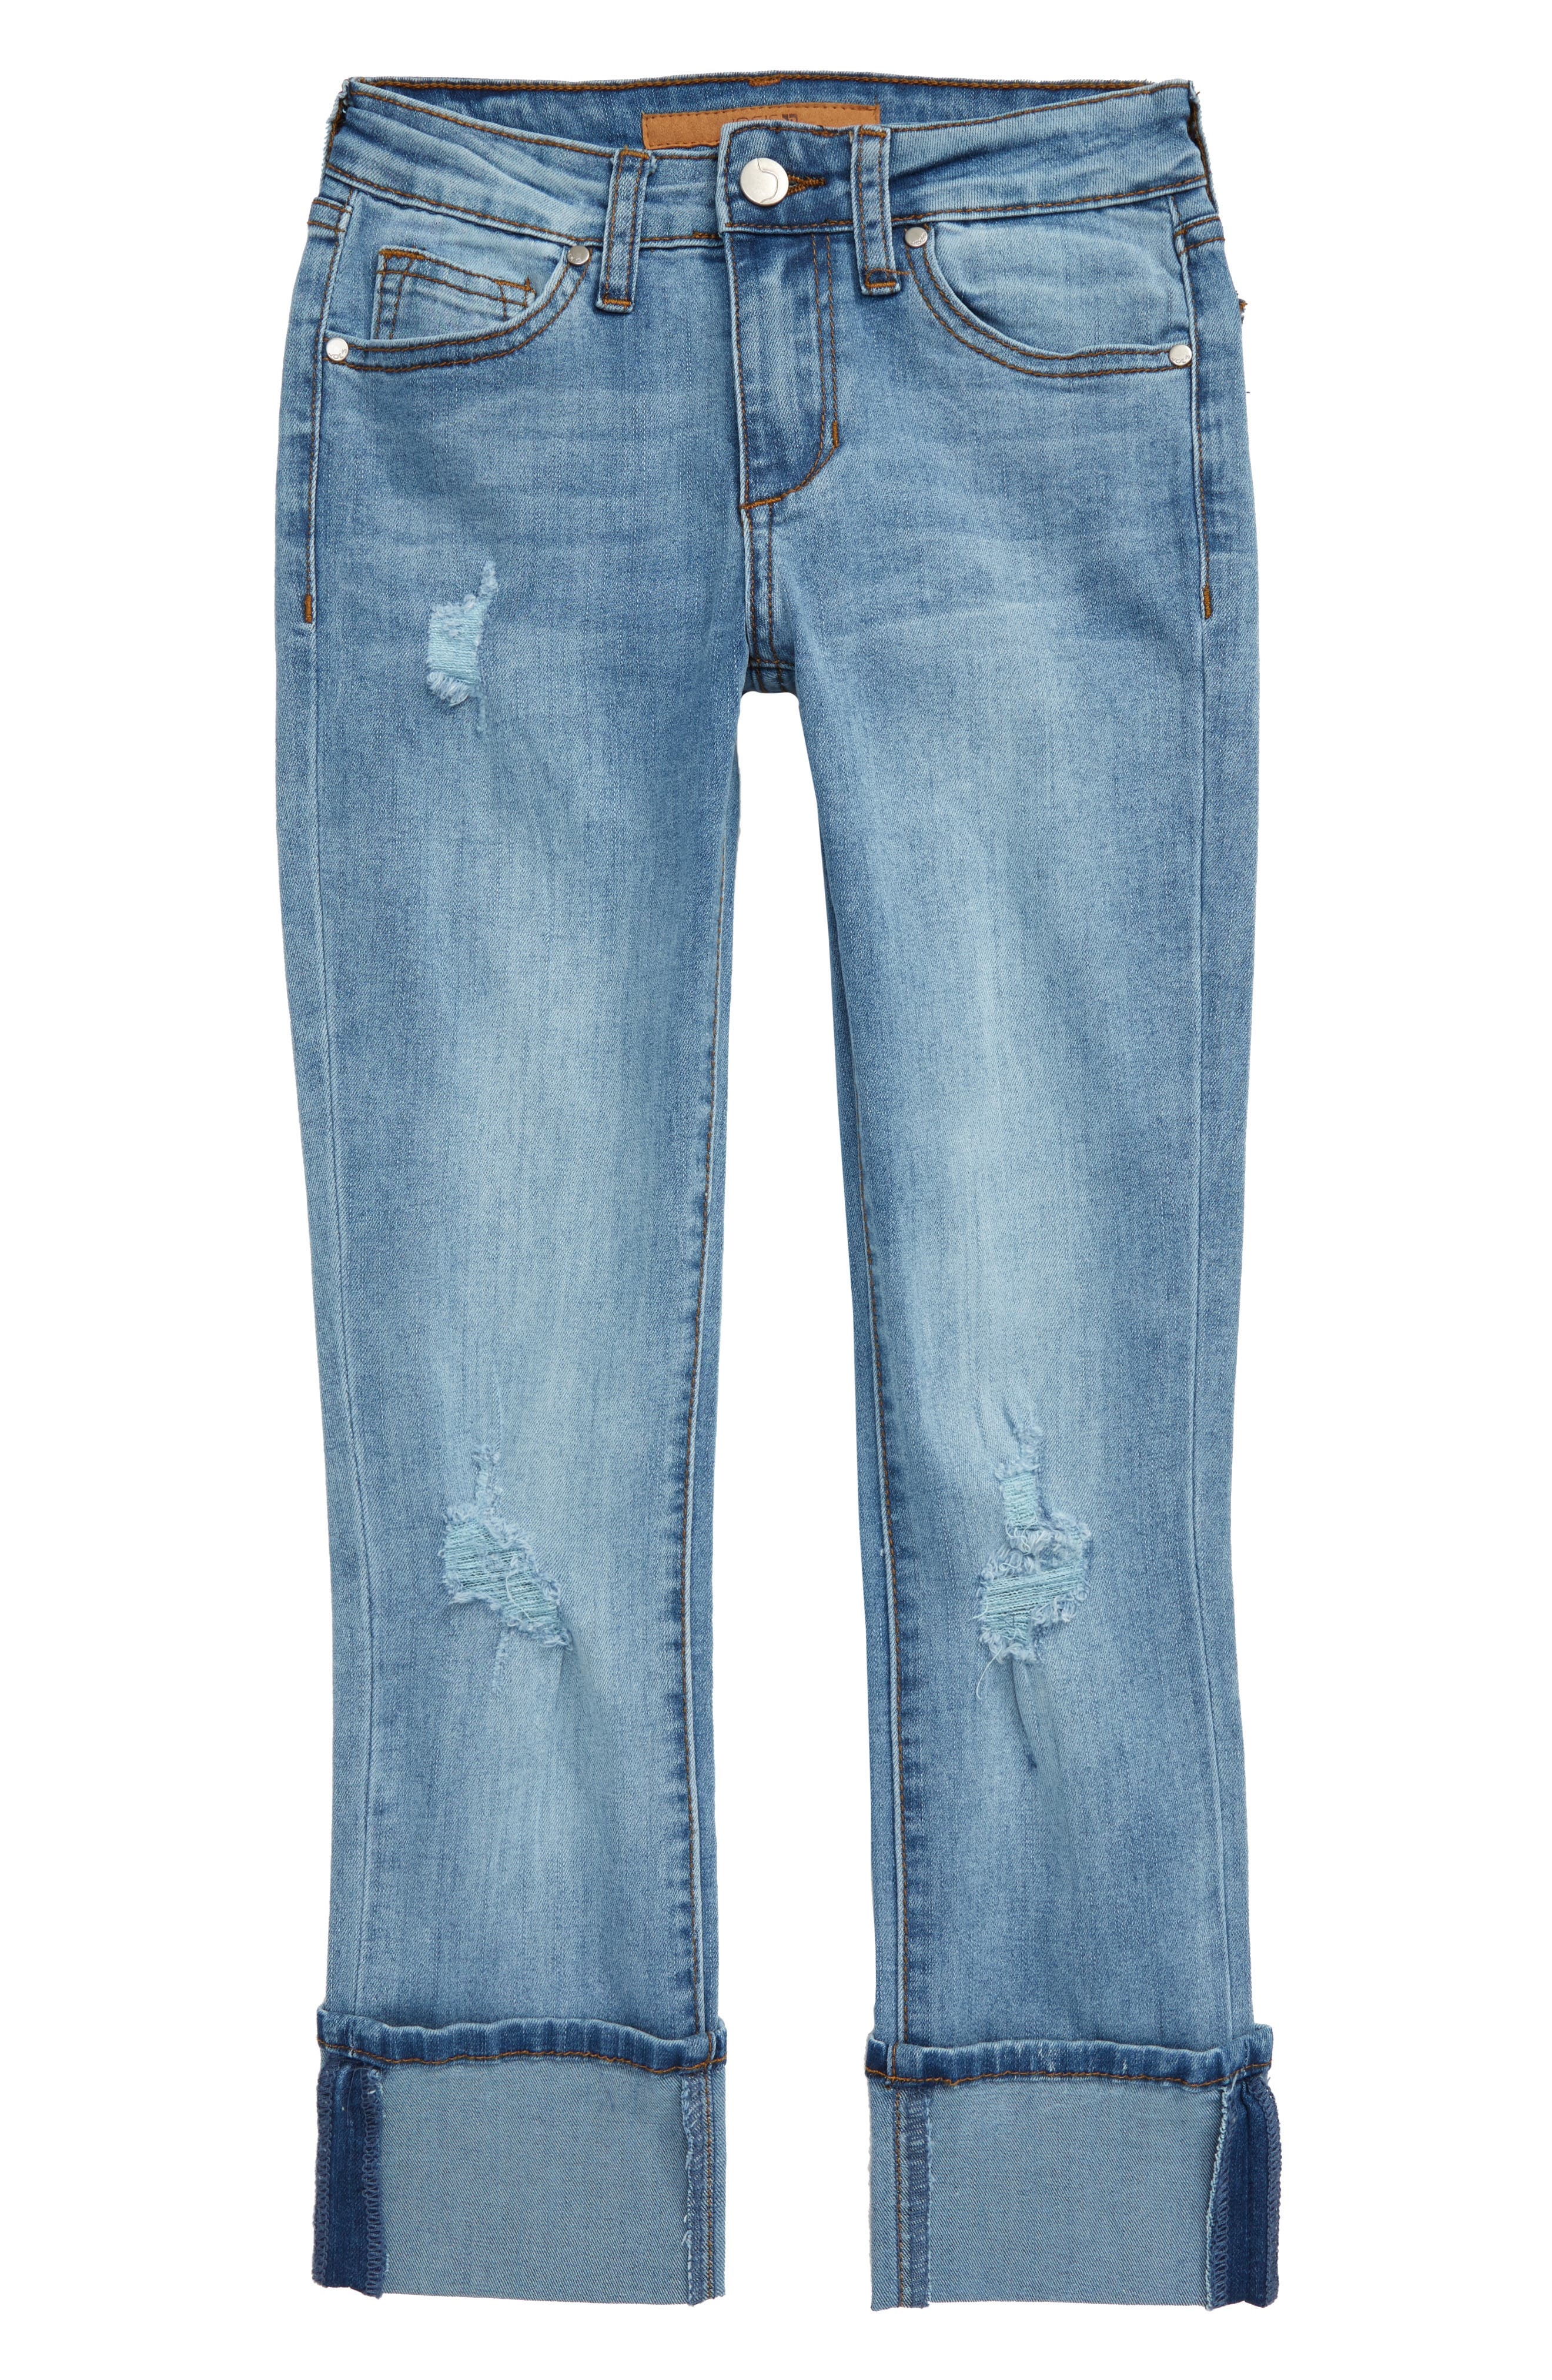 Black Jeans for Youth Boys Sizes 4 through 8 Suggested Retail $58.00 On SALE